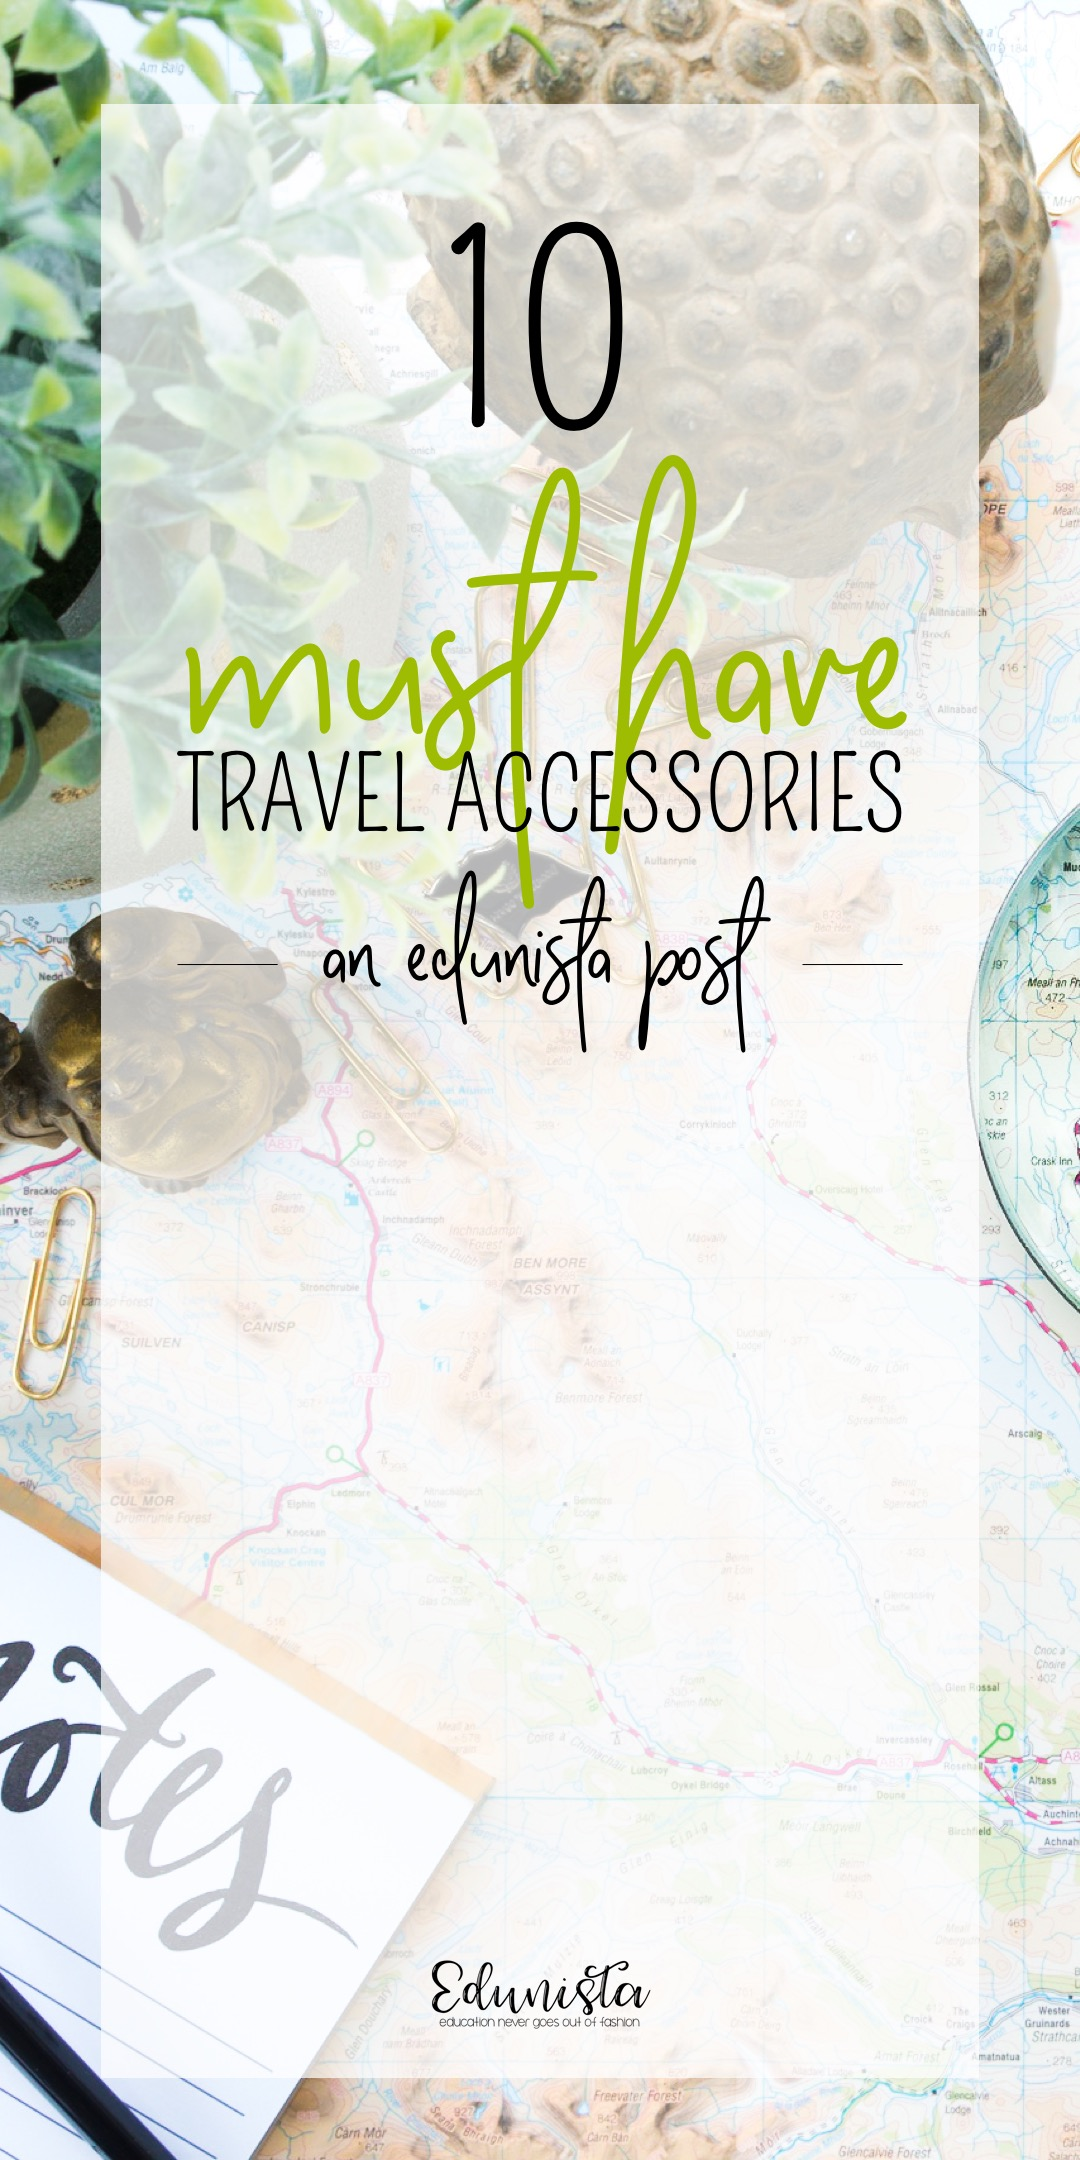 These travel tips and tricks are amazing! I am going to be so organized on my next vacation/flight with these travel accessories!